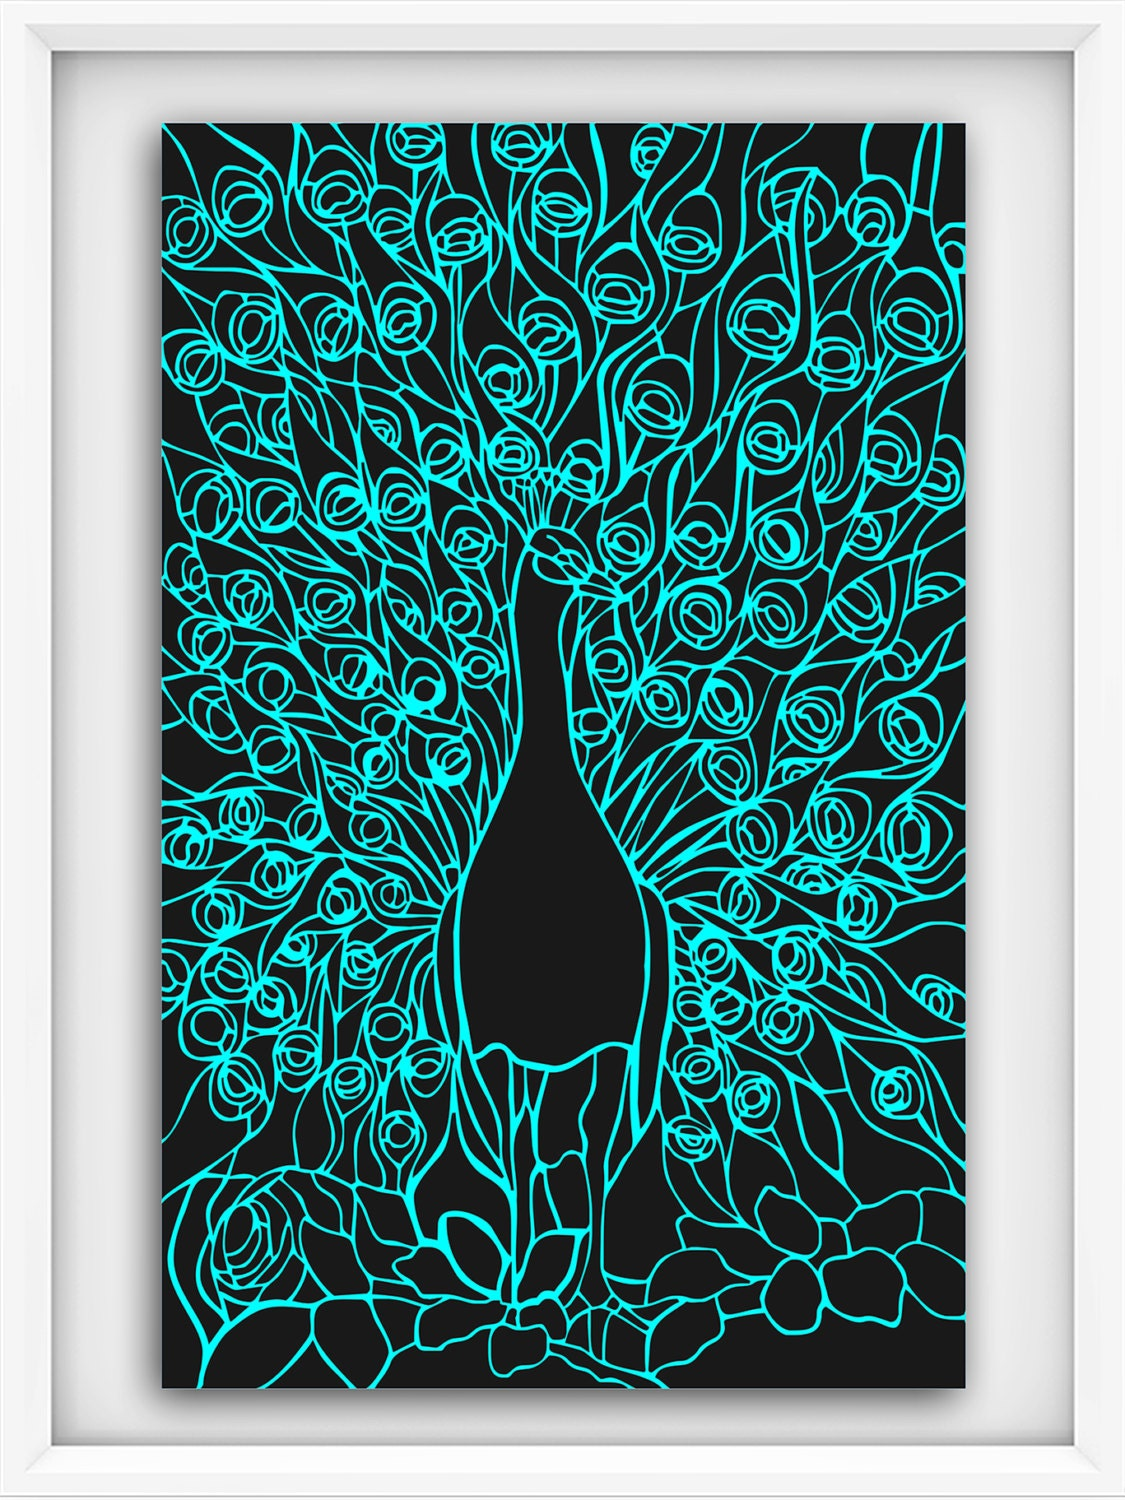 Peacock Silhouette Stained Glass Window Svg Dxf Cutting